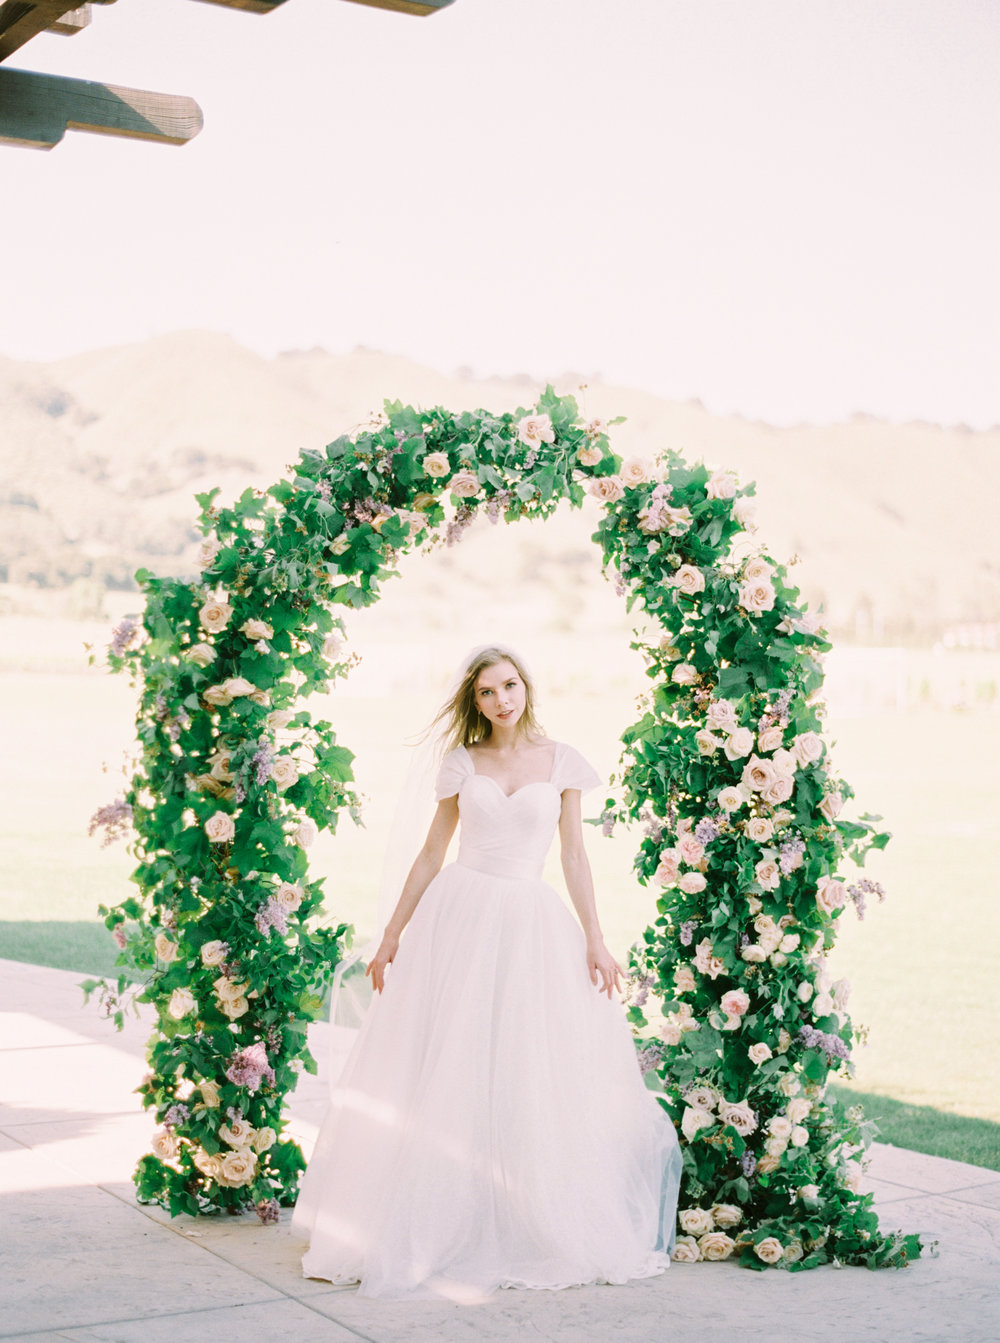 This-Love-of-Yours-Kirigin-Cellars-Flower-Arch-Styled-Shoot-104.jpg